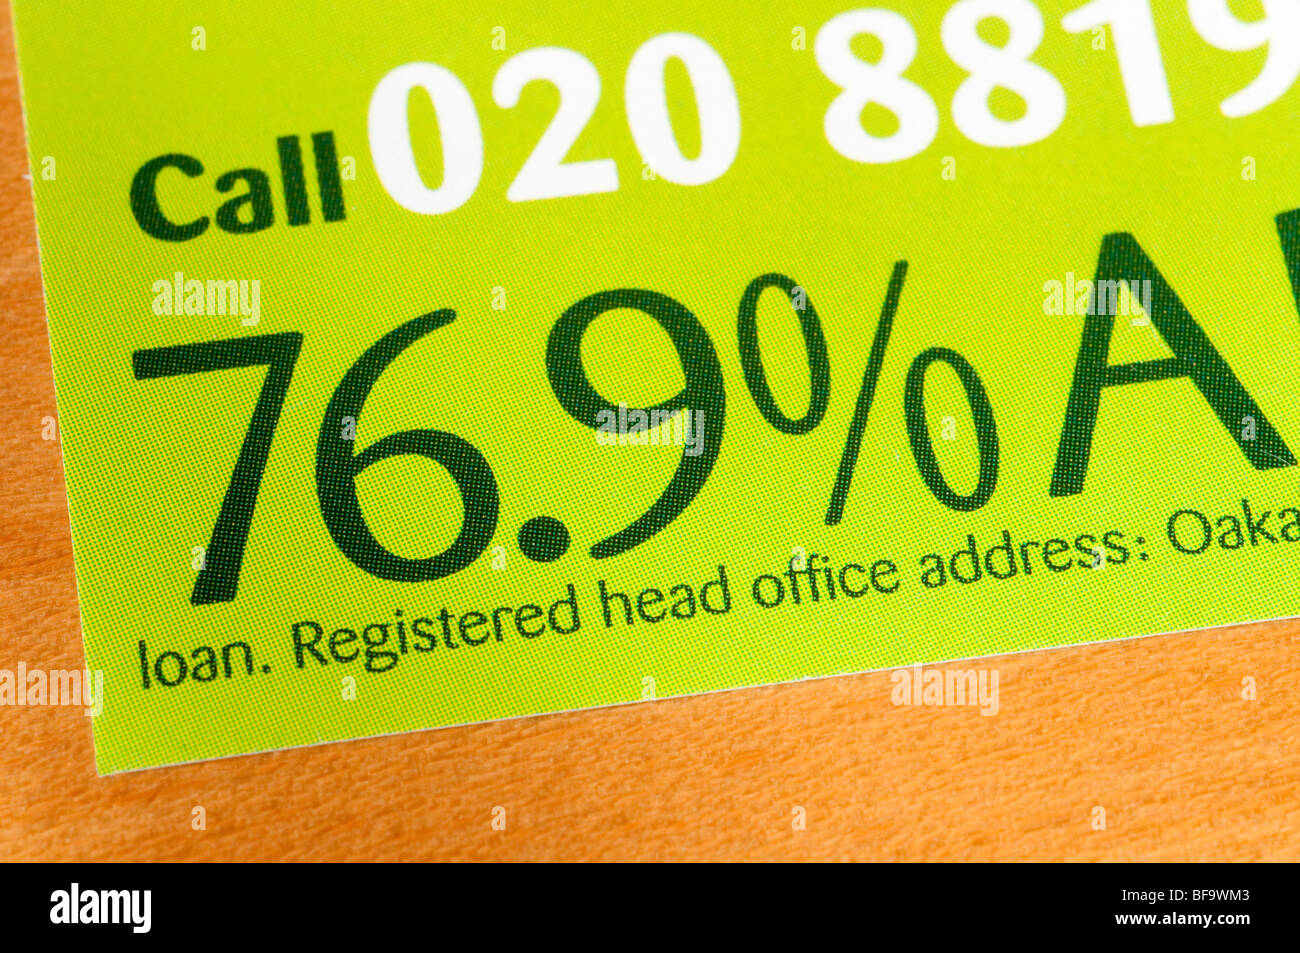 Exorbitantly high interest rate on Oakam loan company leaflet - Stock Image